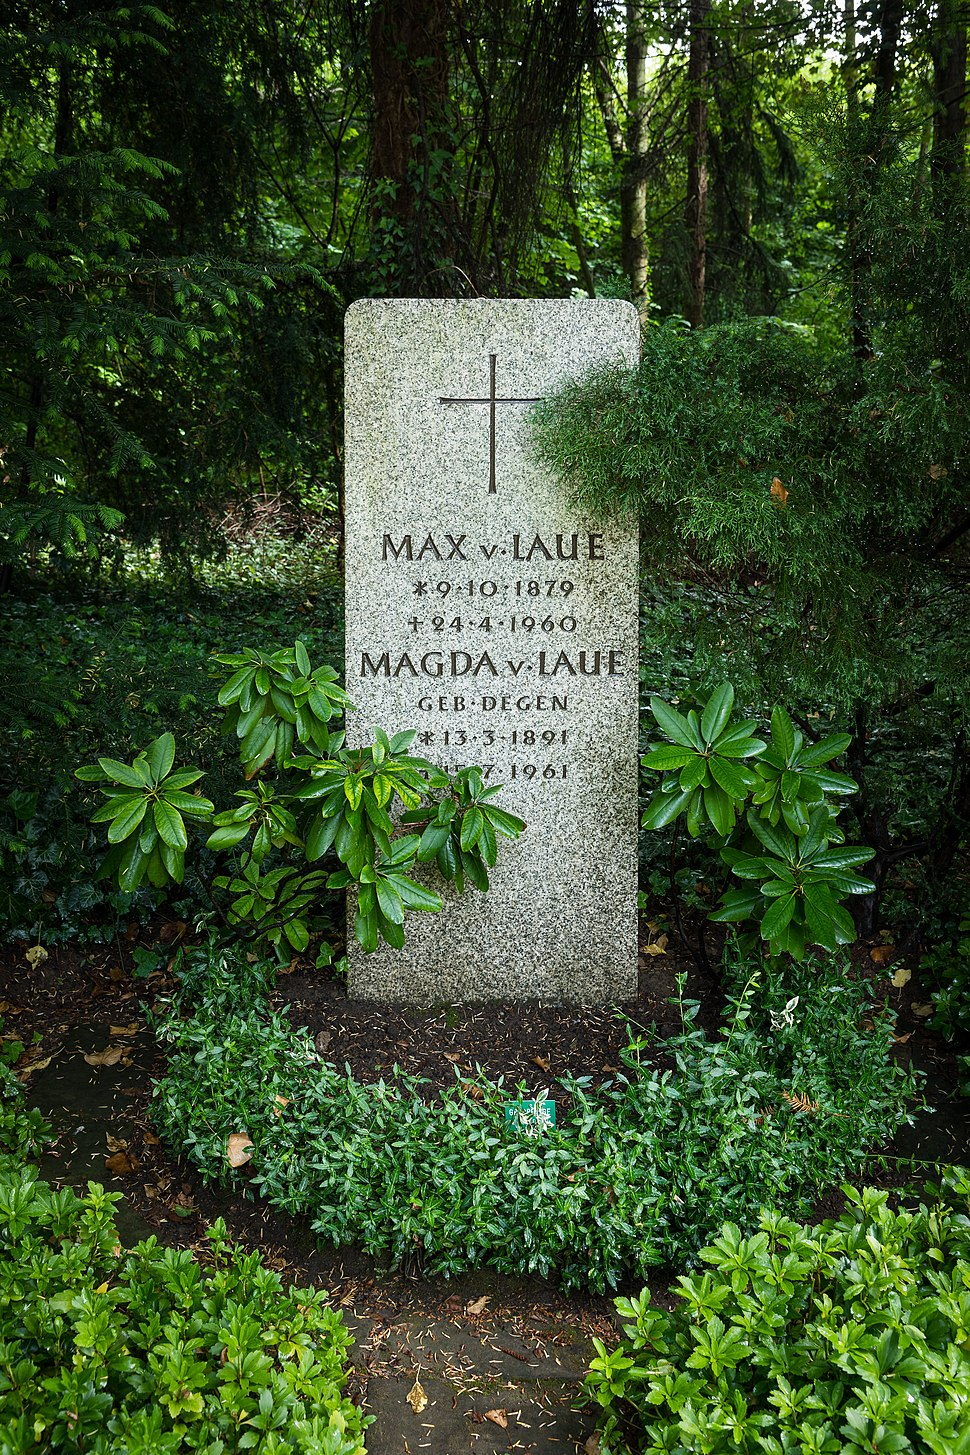 Grave of Max von Laue at Stadtfriedhof Göttingen 2017 01